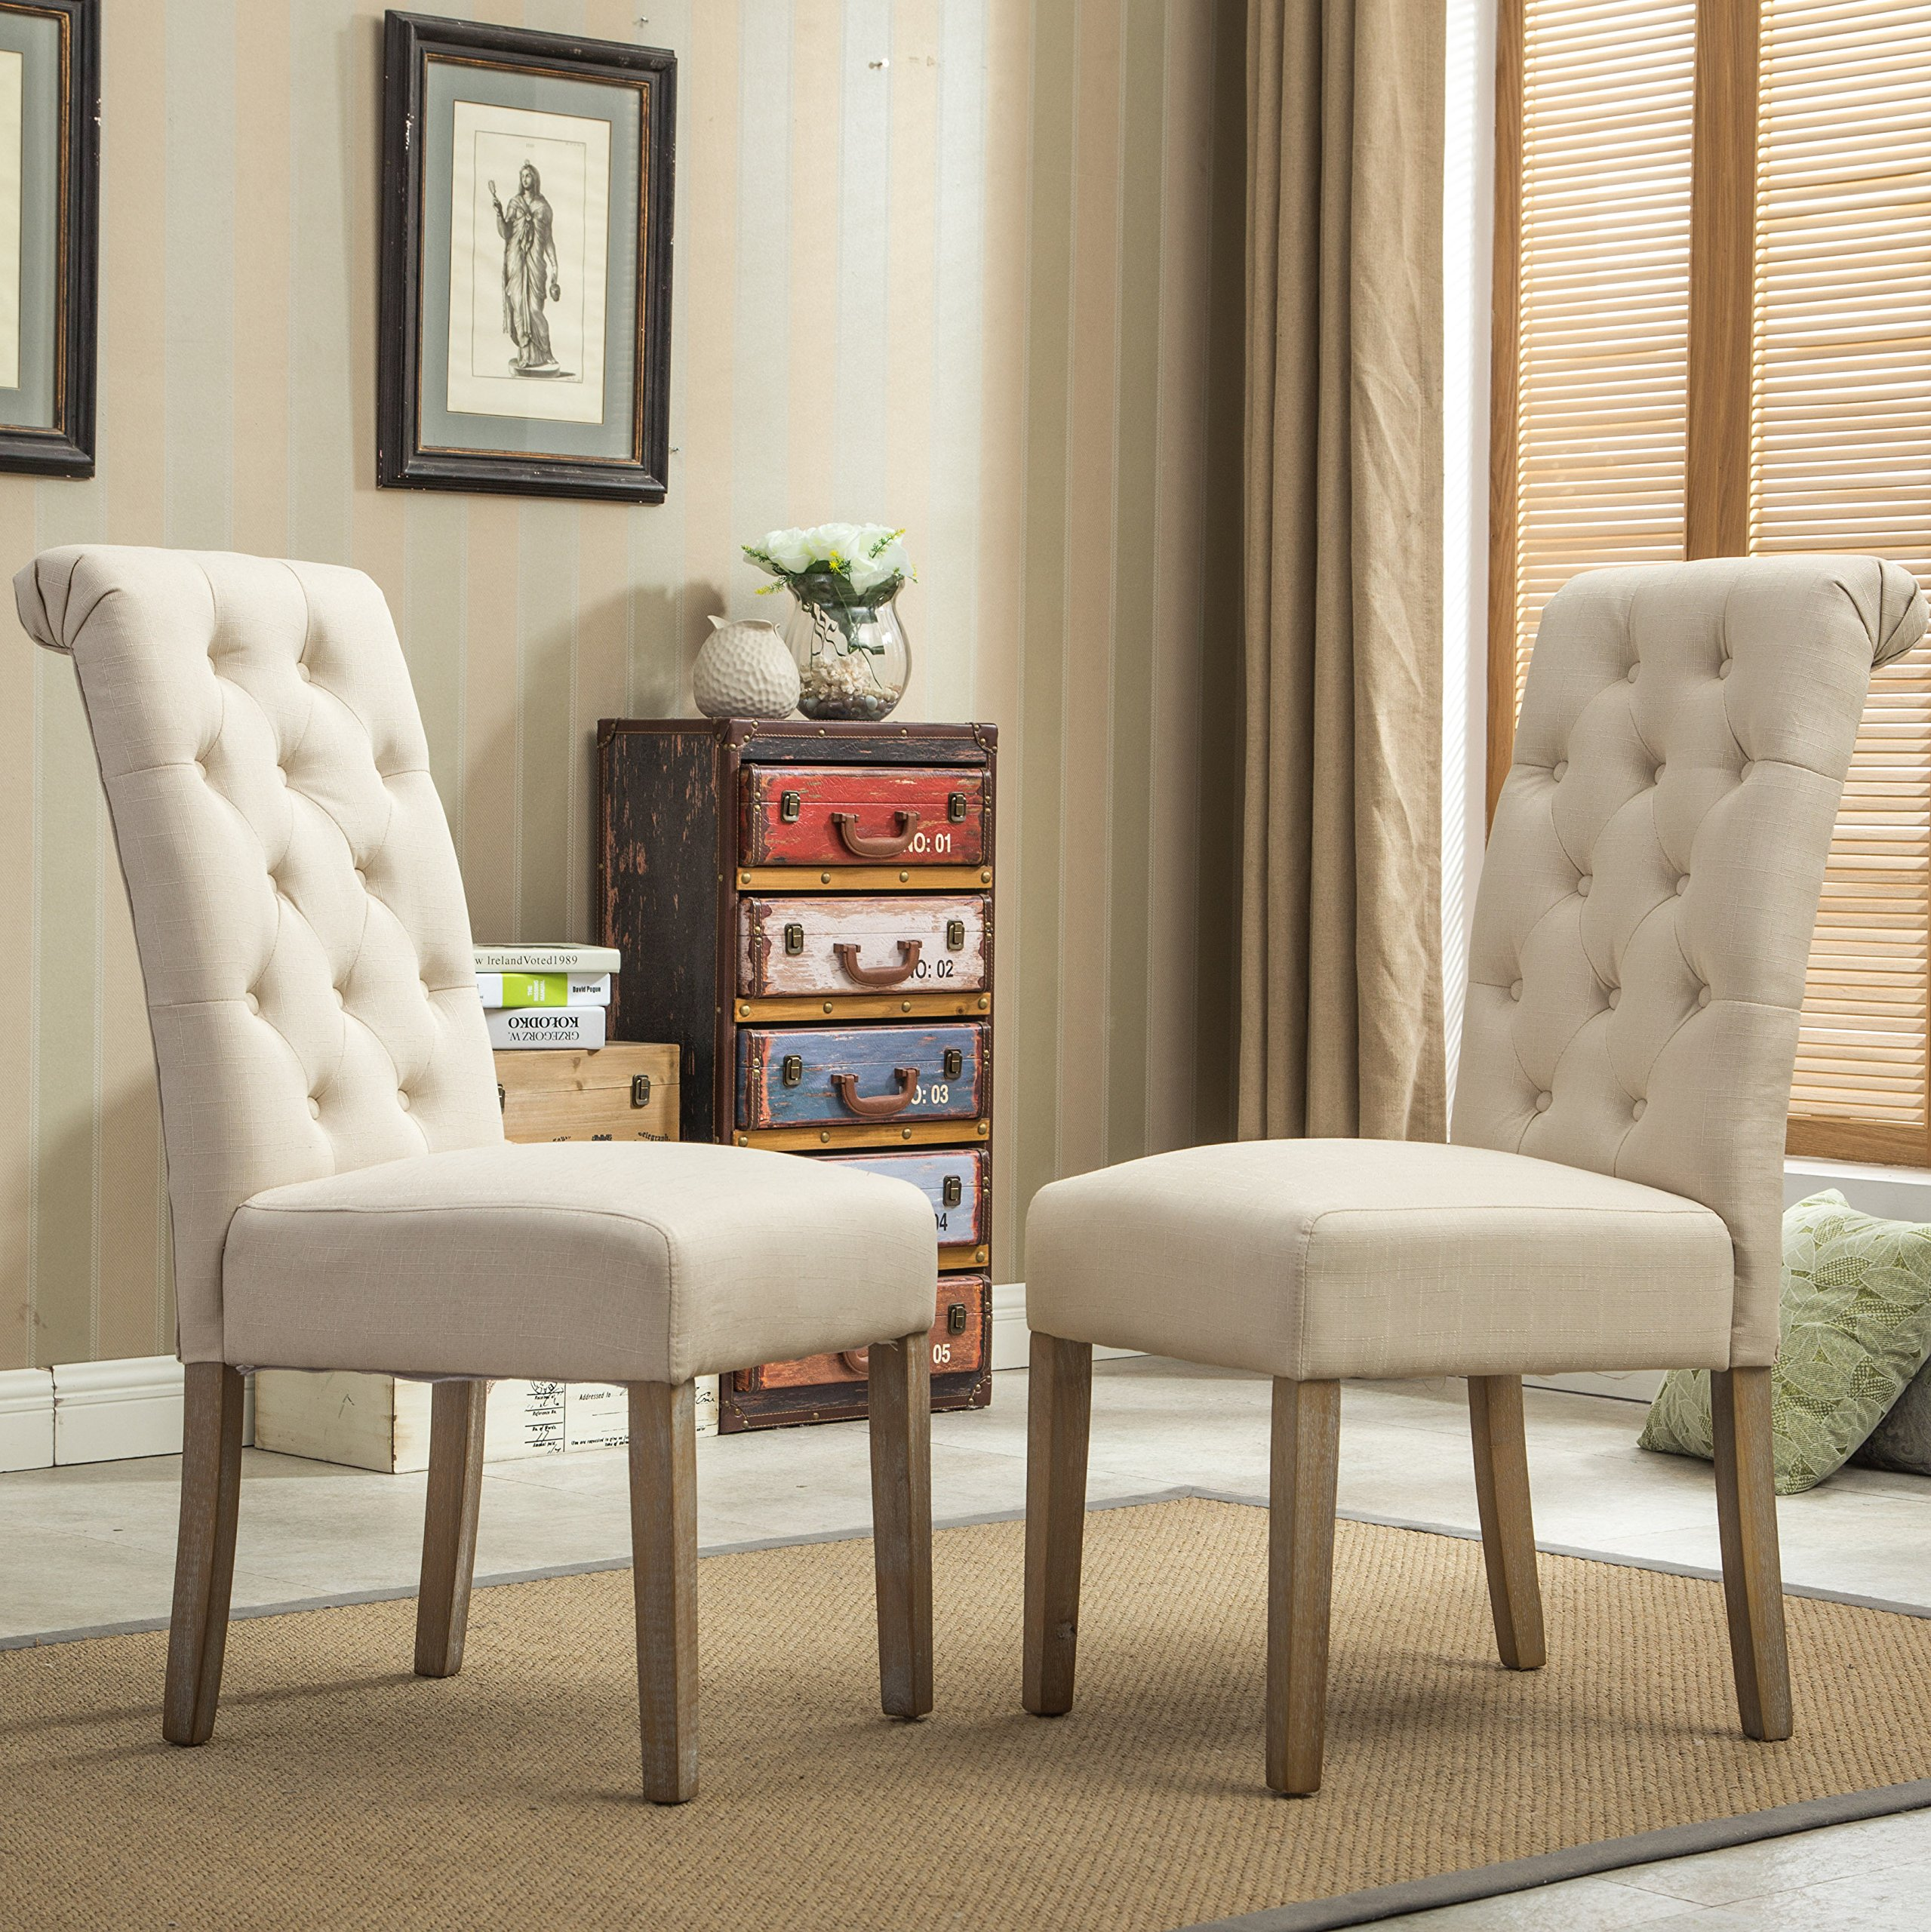 Roundhill Furniture Habit Solid Wood Tufted Parsons Dining Chair (Set of 2), Tan by Roundhill Furniture